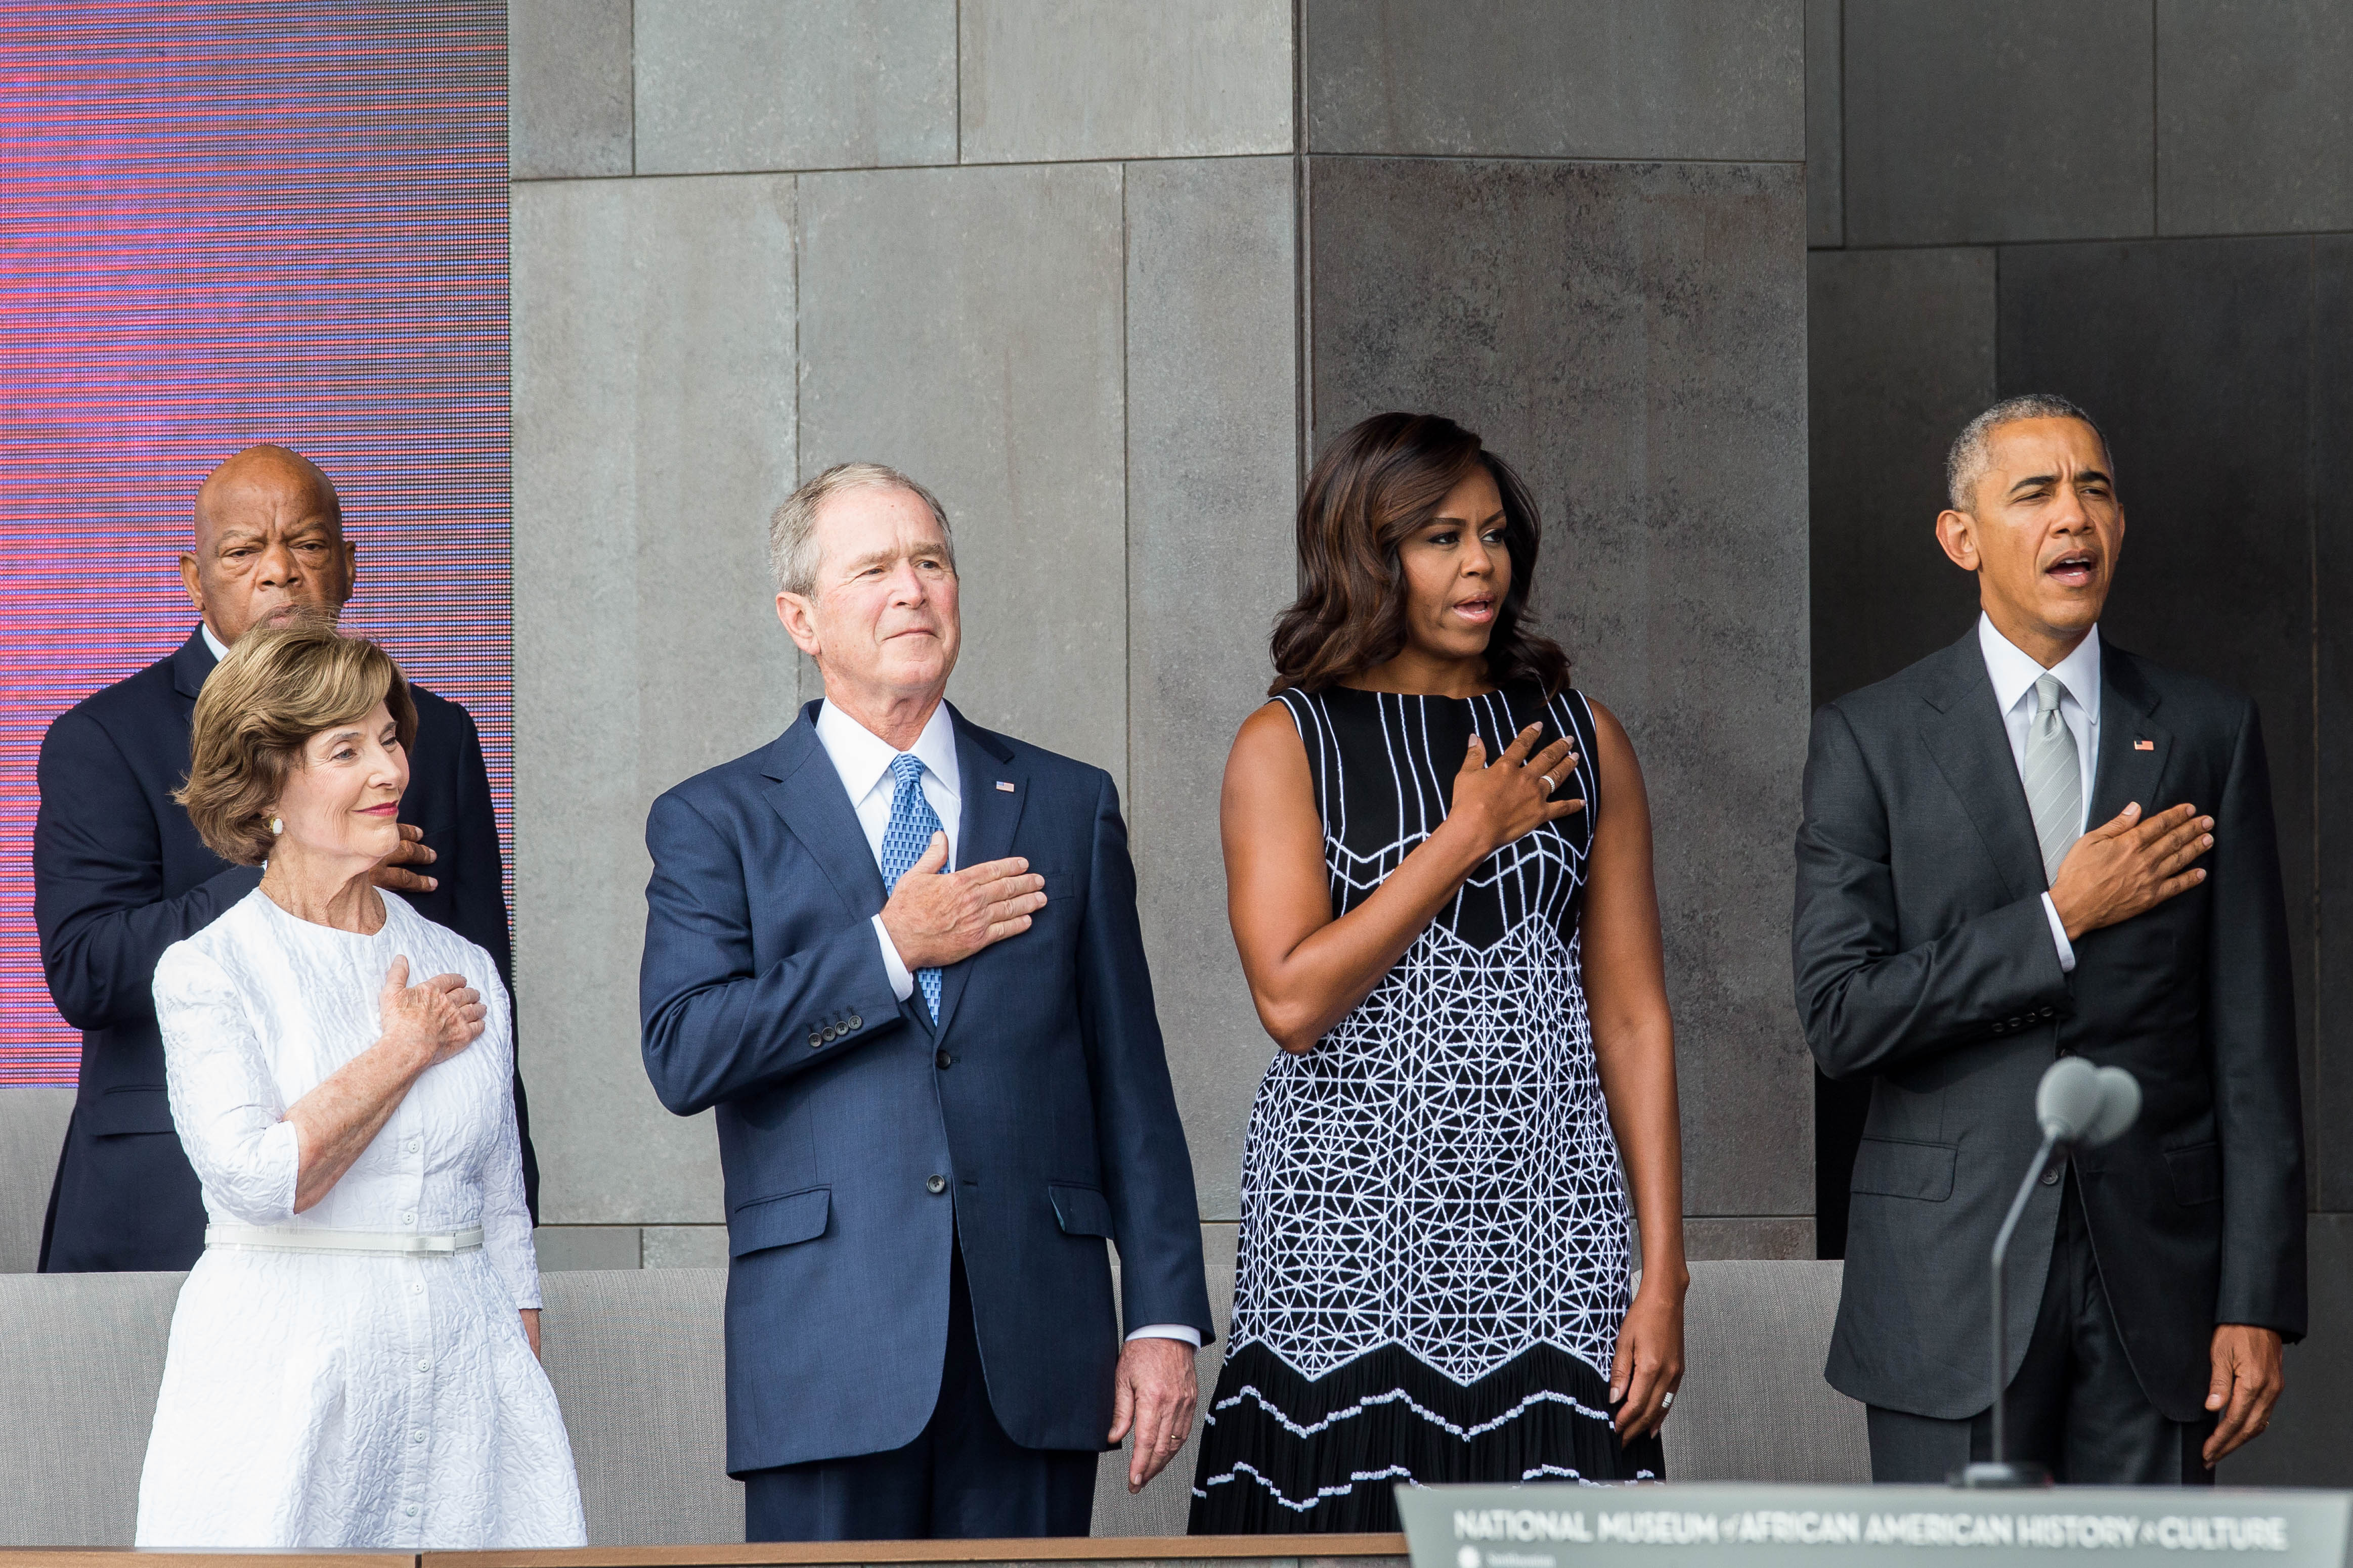 Former First Lady Laura Bush, former President George W. Bush, First Lady Michelle Obama and President Barack Obama stand for the National Anthem during the opening ceremony for the Smithsonian National Museum of African American History and Culture on Sept. 24, 2016 in Washington, D.C.